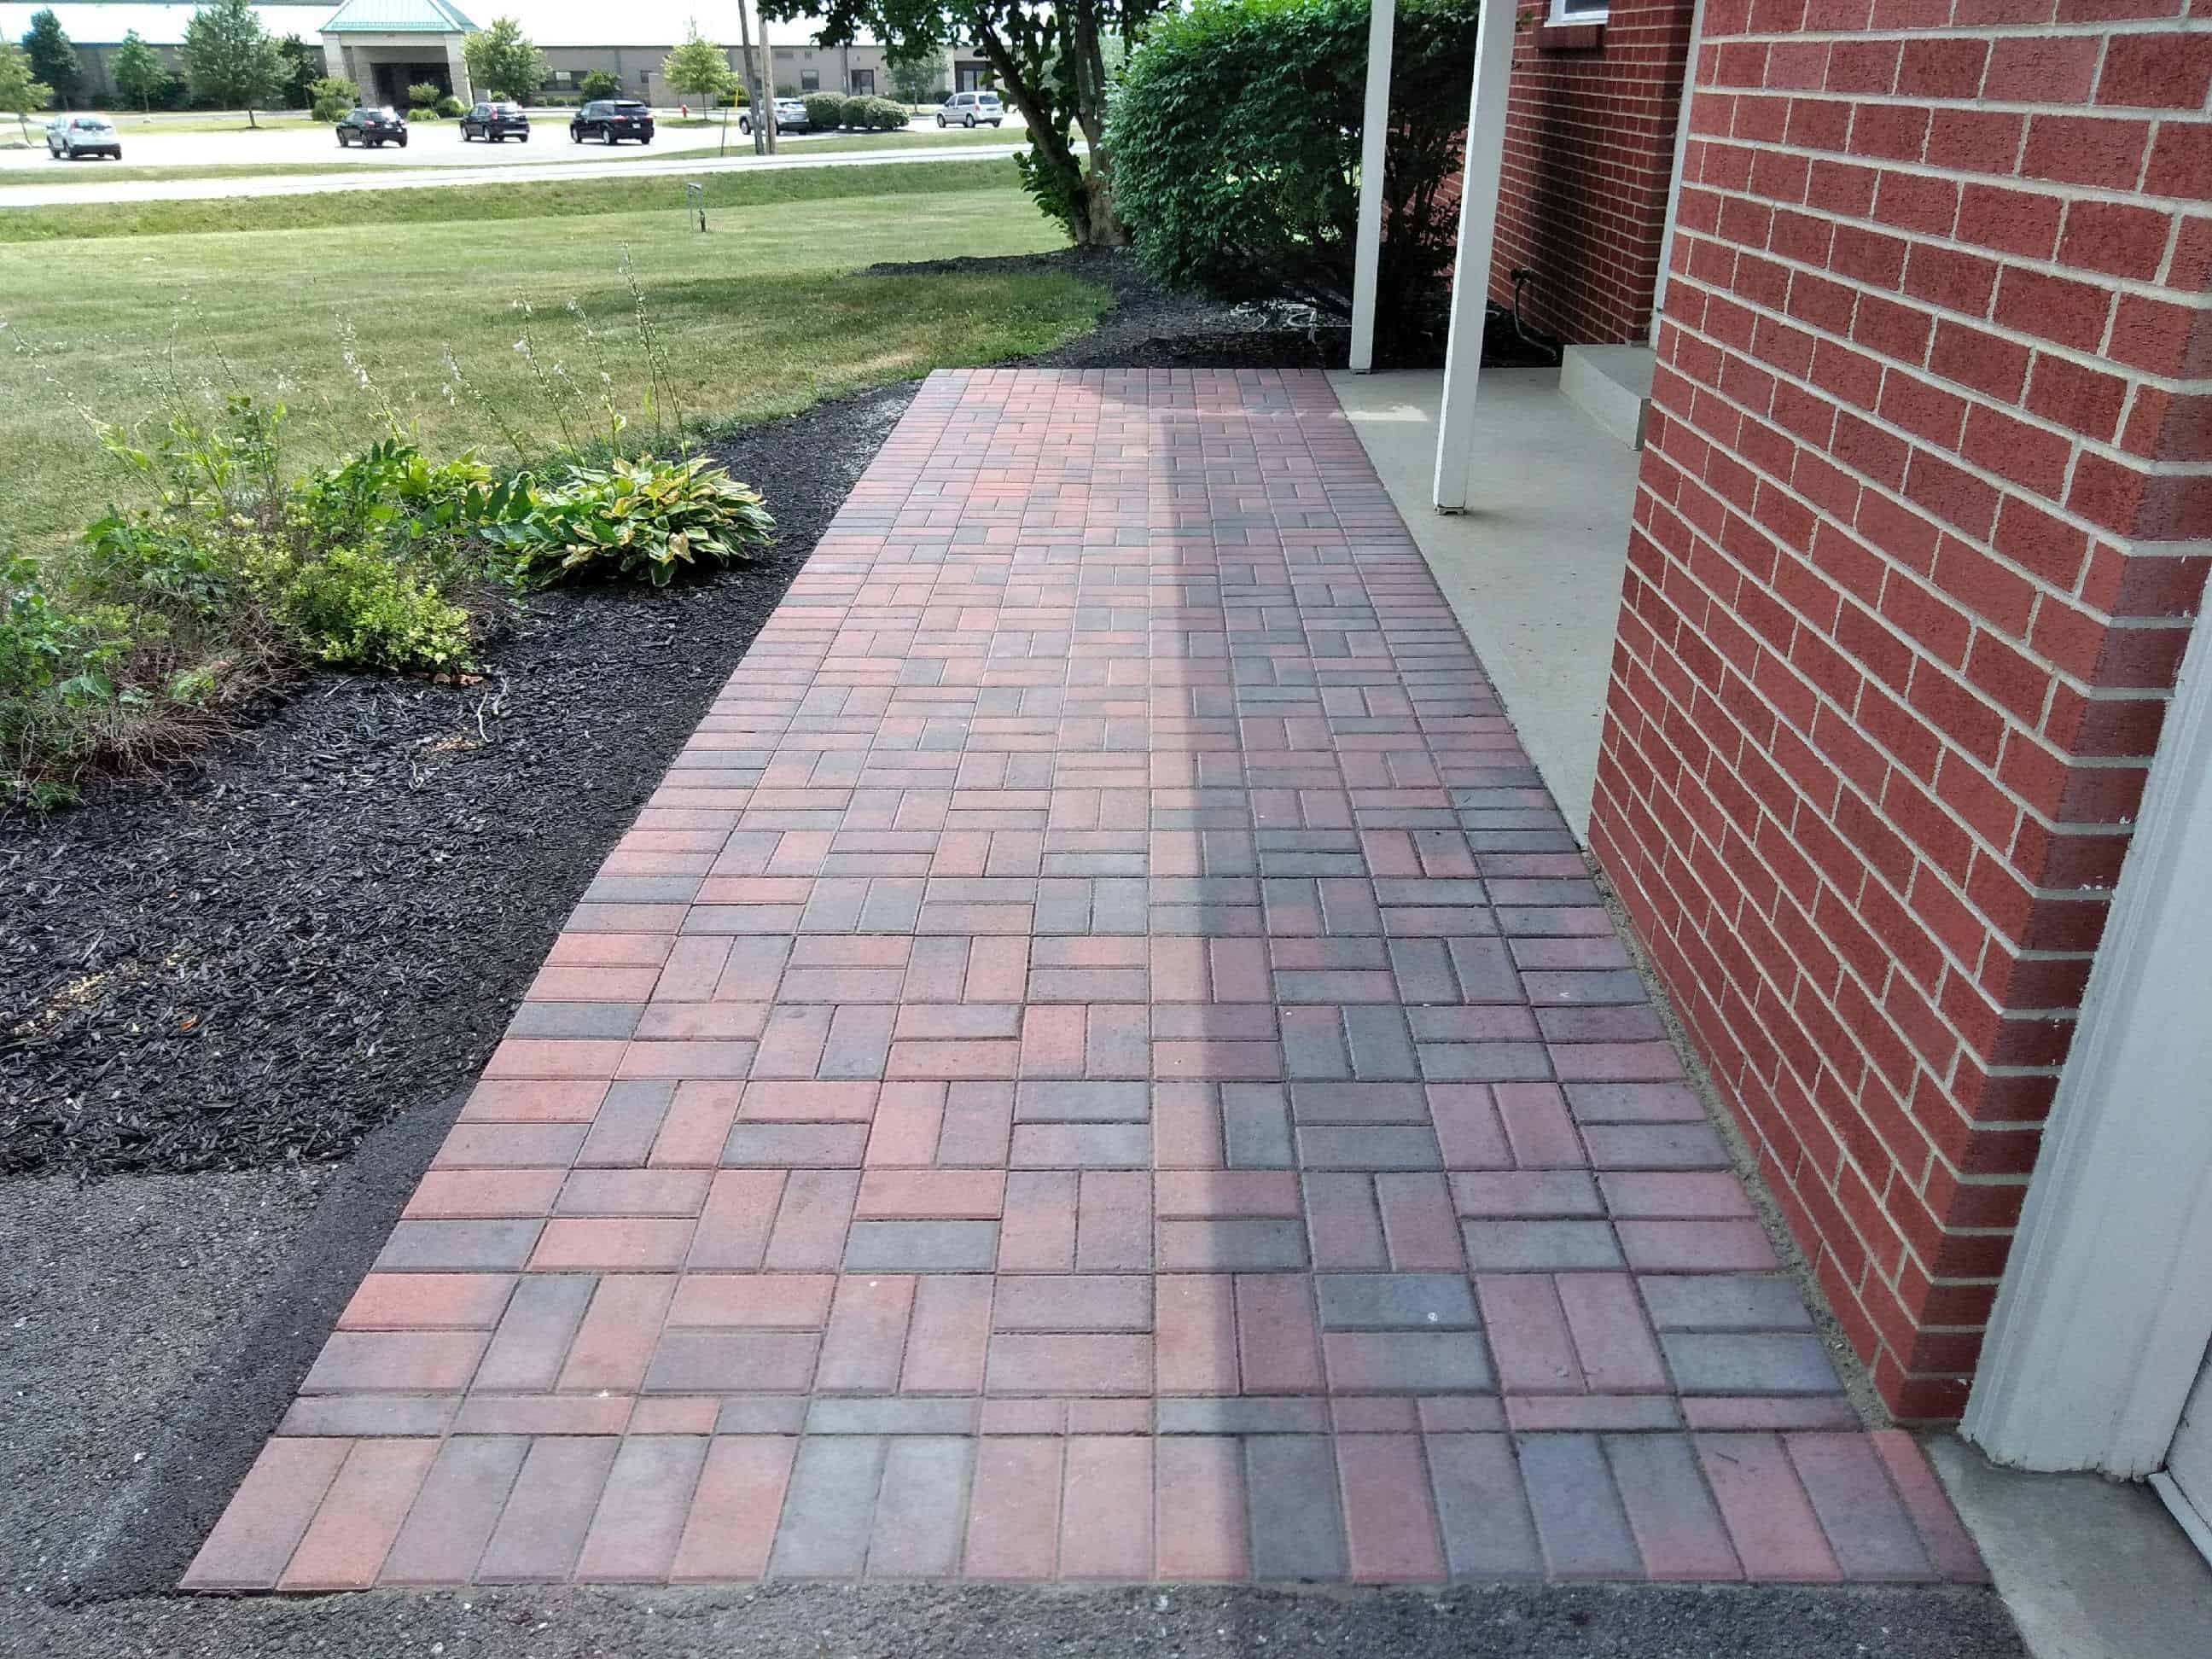 Paver-Walkway-Jack-Hanna-Zoo-Rental-Property